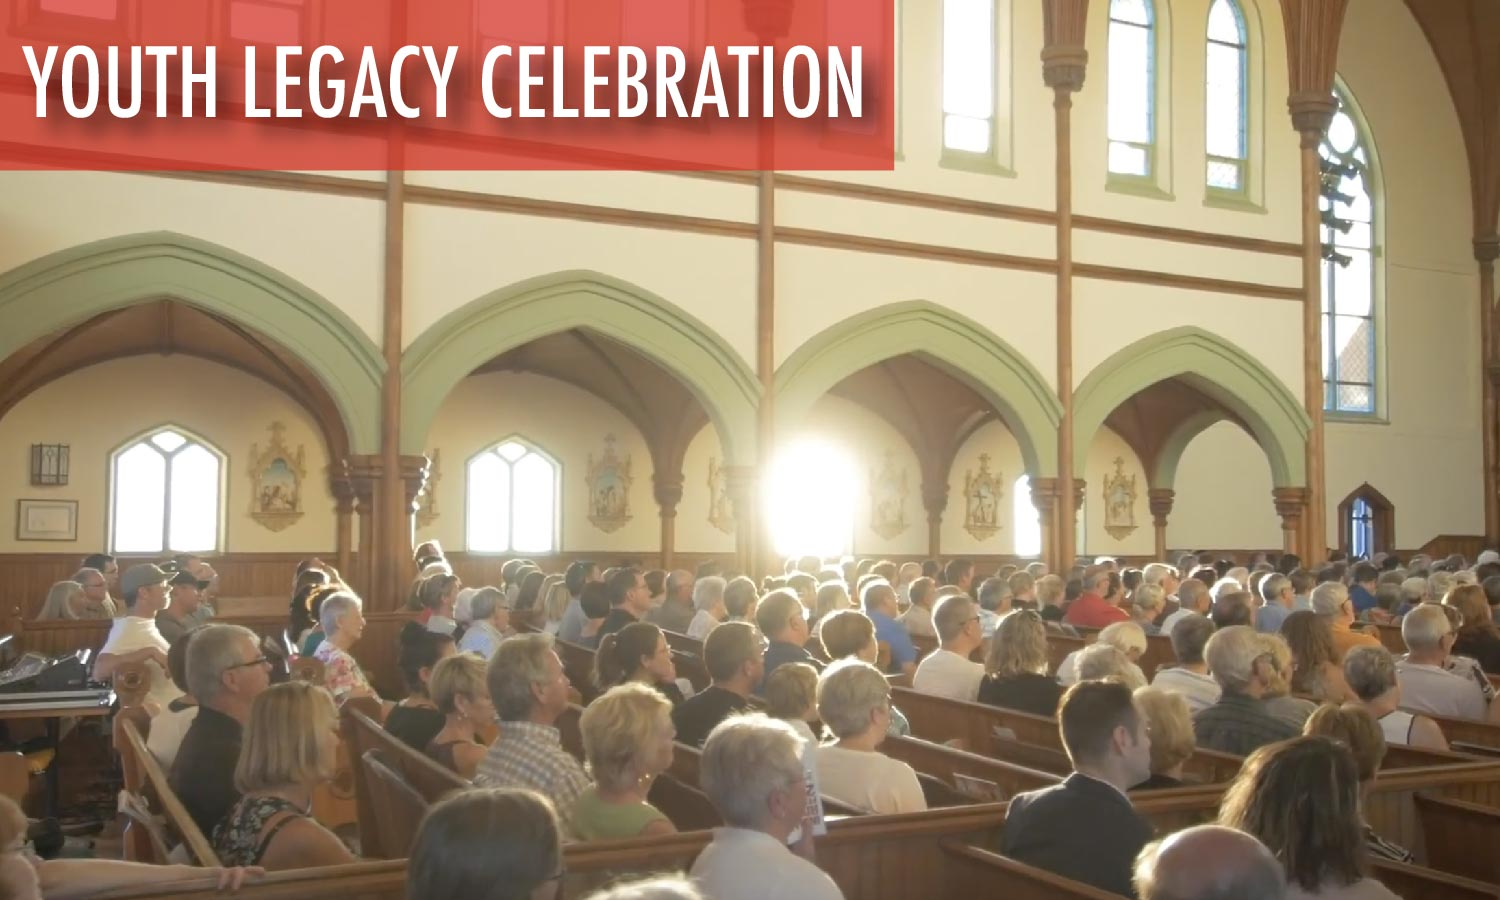 Youth Legacy Celebration @ Historic St. Mary's